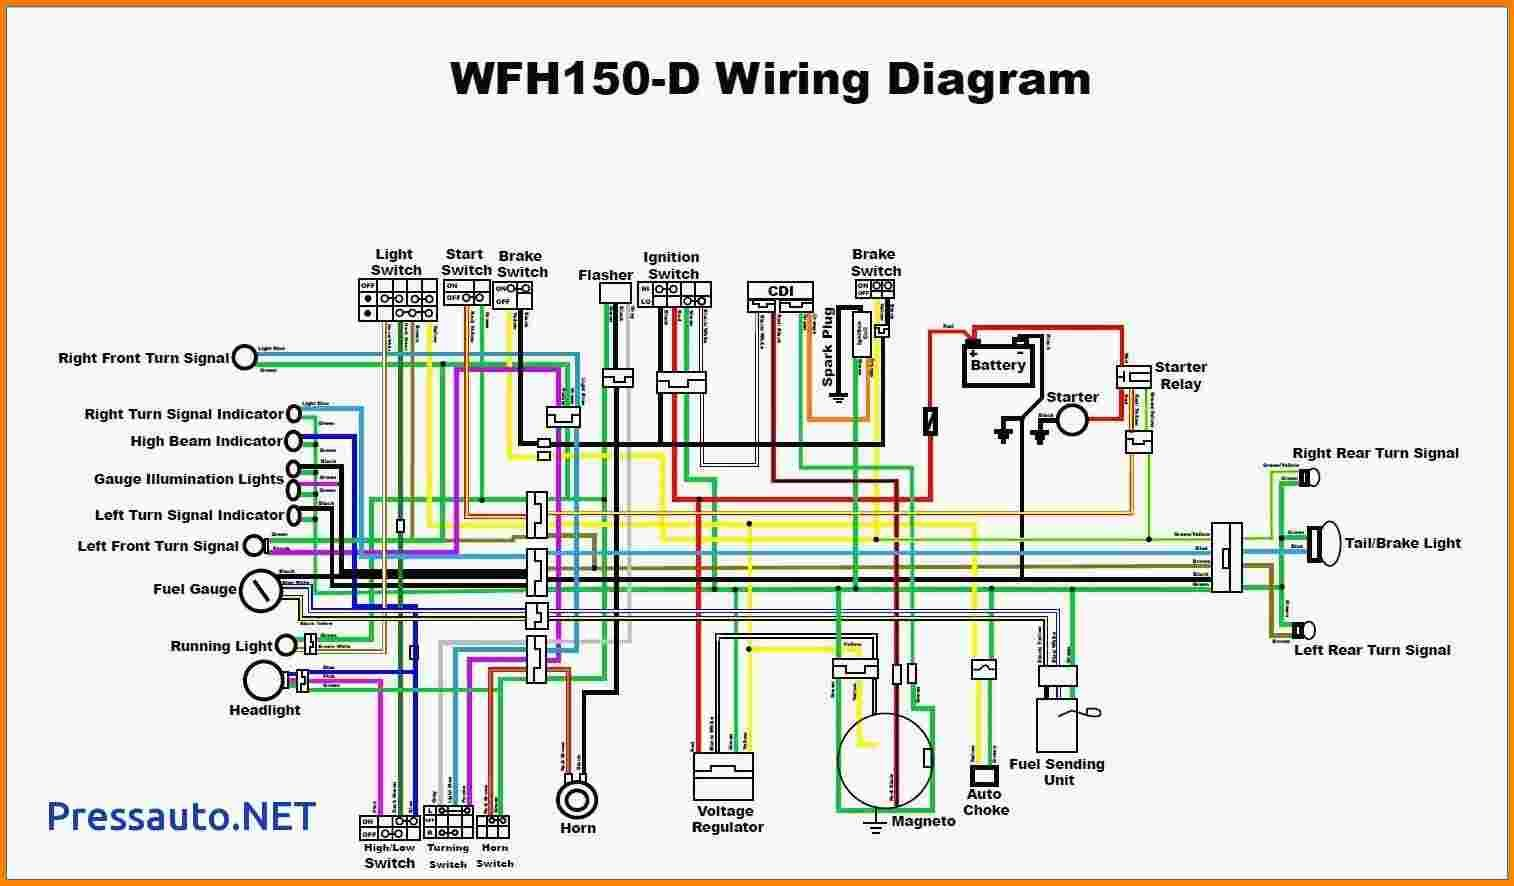 medium resolution of 90 atv wiring diagram wiring diagram schema 2007 baja 90 atv wiring diagram 90 atv wiring diagram